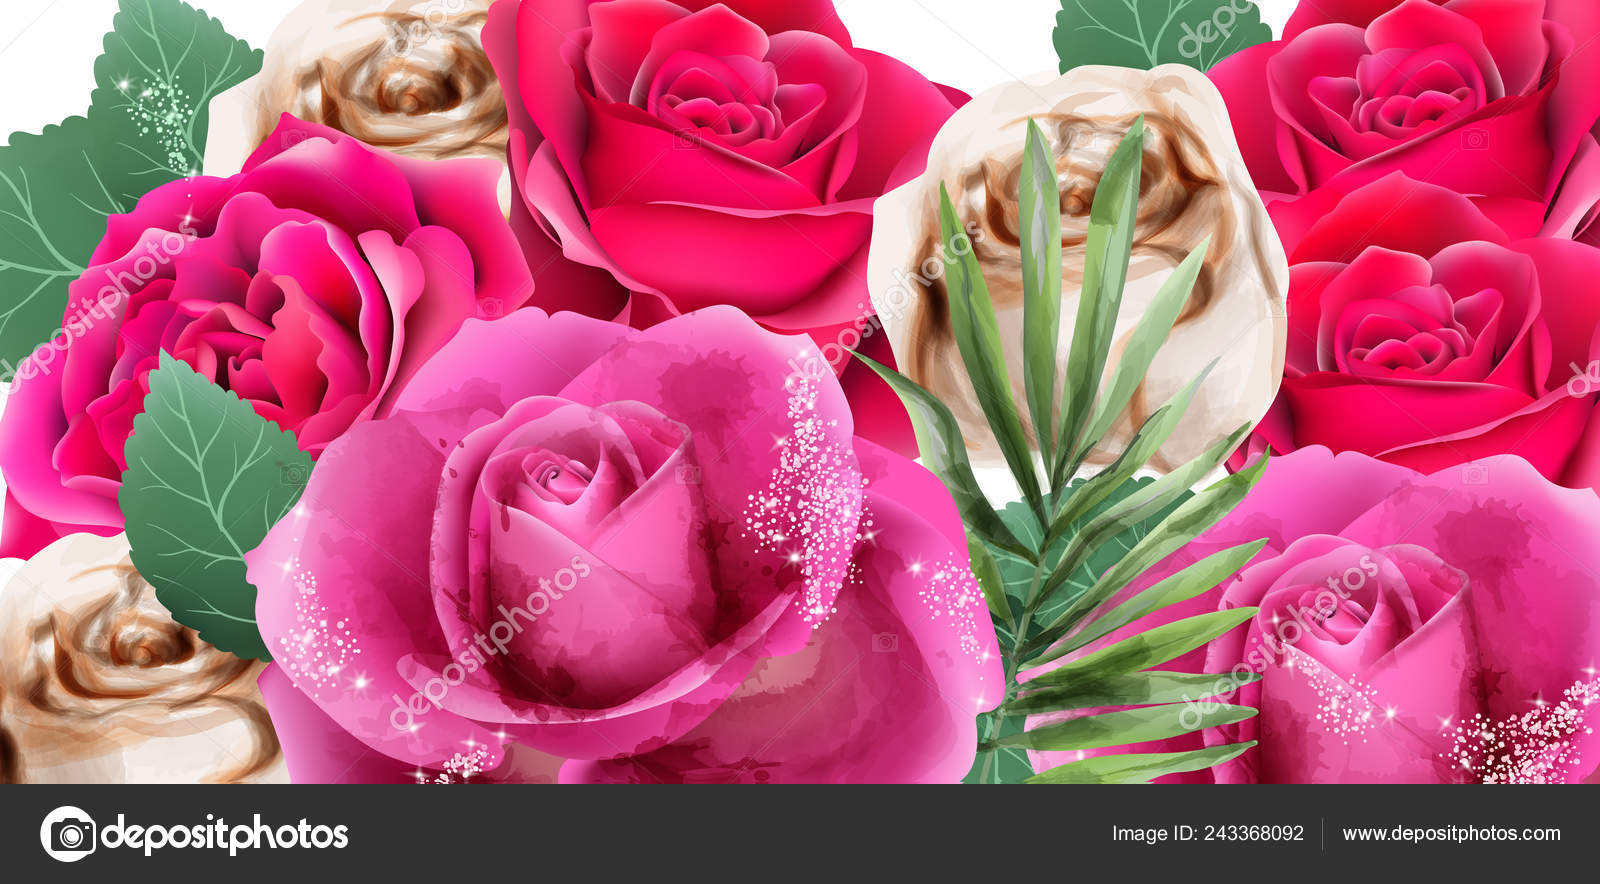 Pink Roses And Glitter Watercolor Vector Beautiful Floral